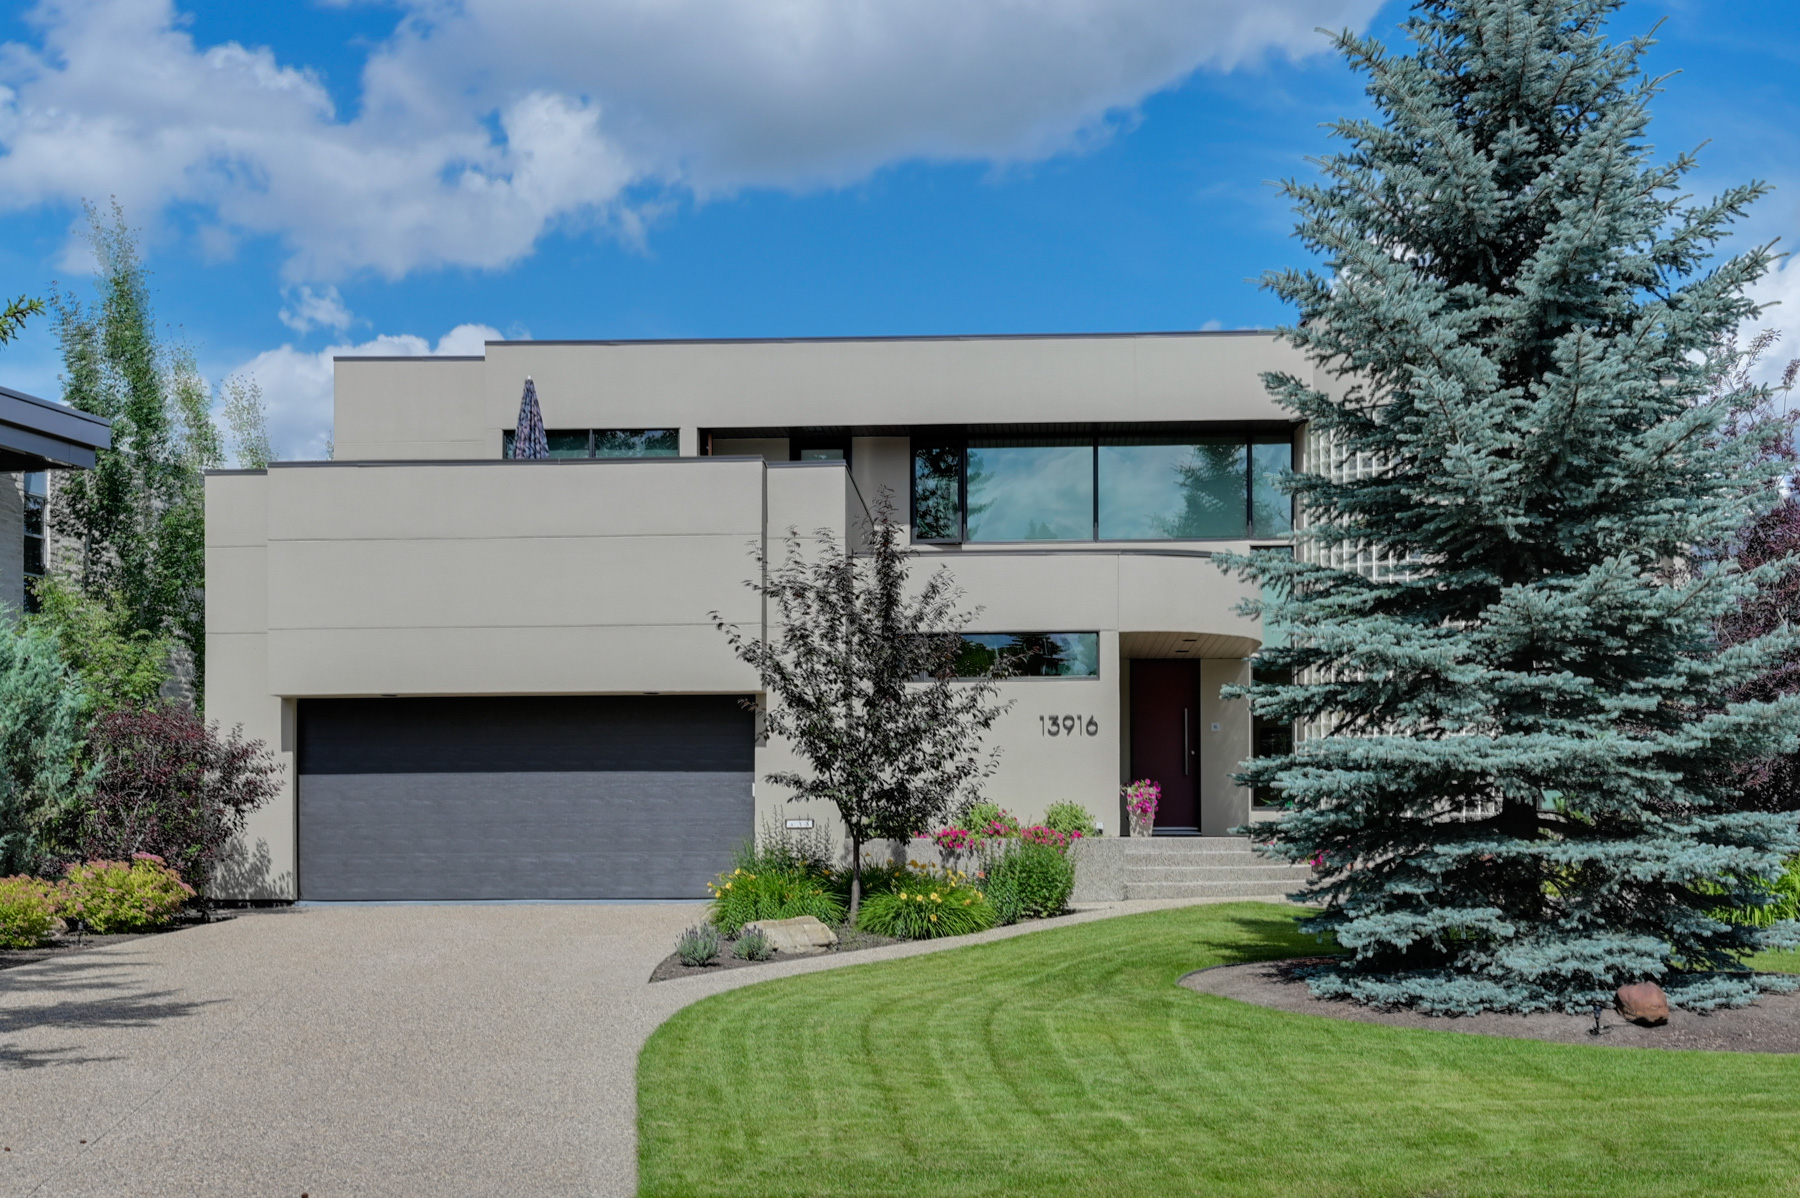 FEATURED LISTING: 13916 Valleyview Drive Edmonton